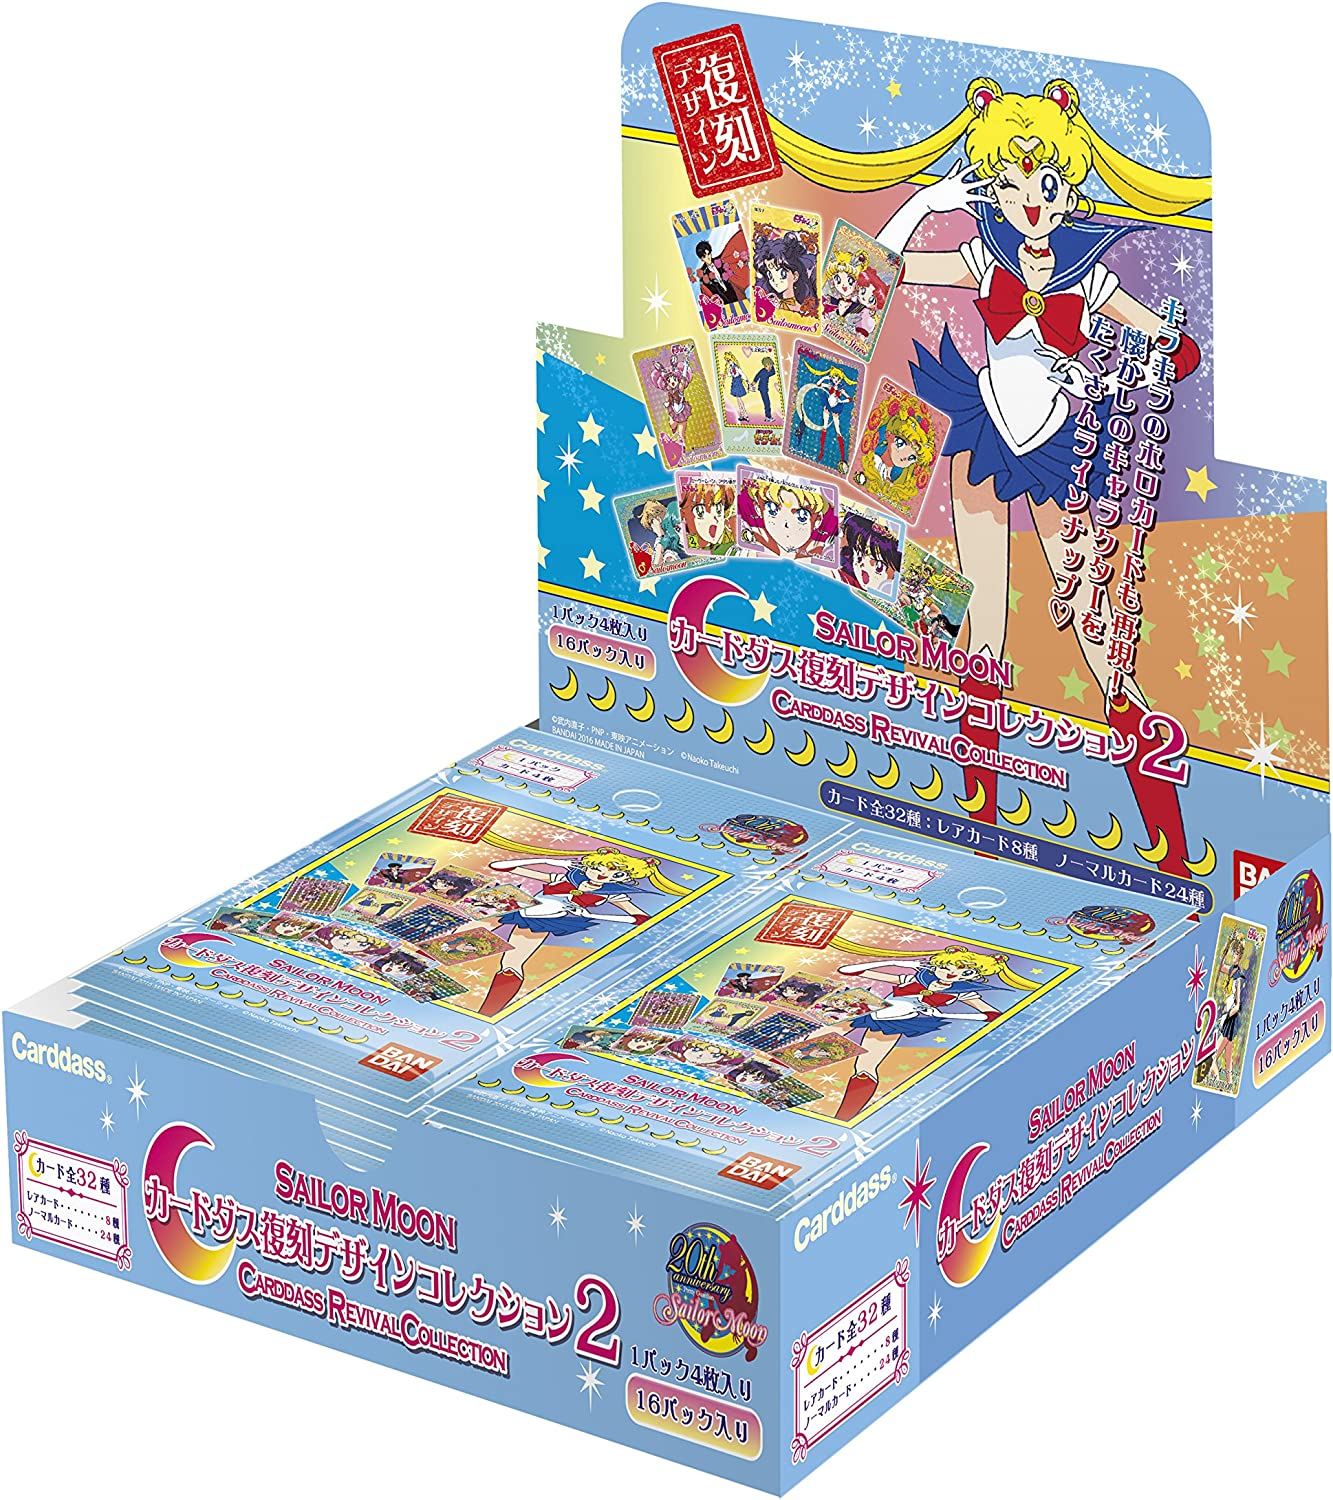 Sailor Moon Carddass Reprint Design Revival Collection 2 Booster Pack (Box): Amazon.es: Juguetes y juegos